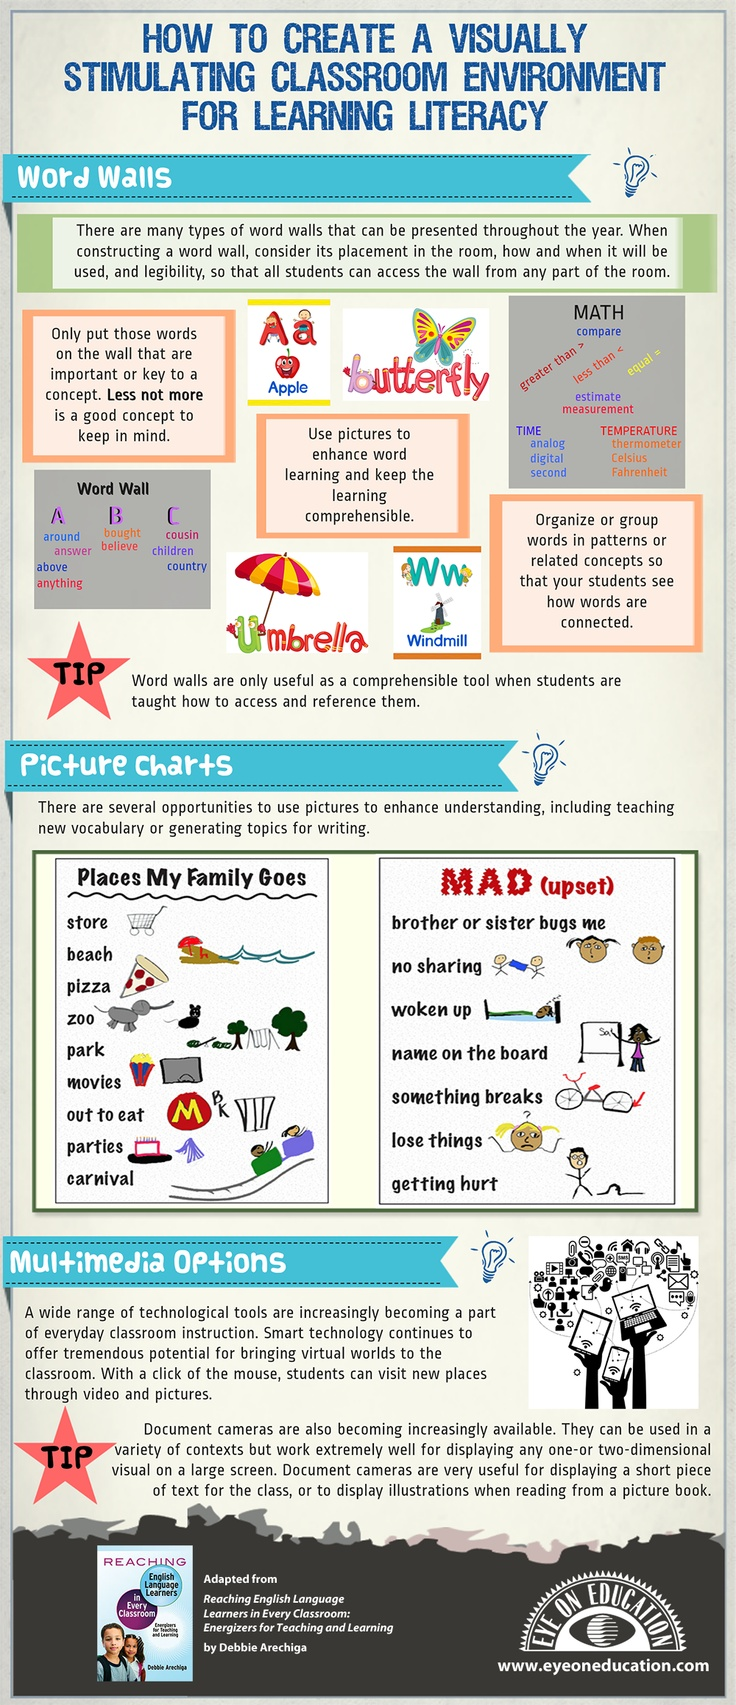 Classroom Design To Promote Literacy ~ Best classroom design images on pinterest